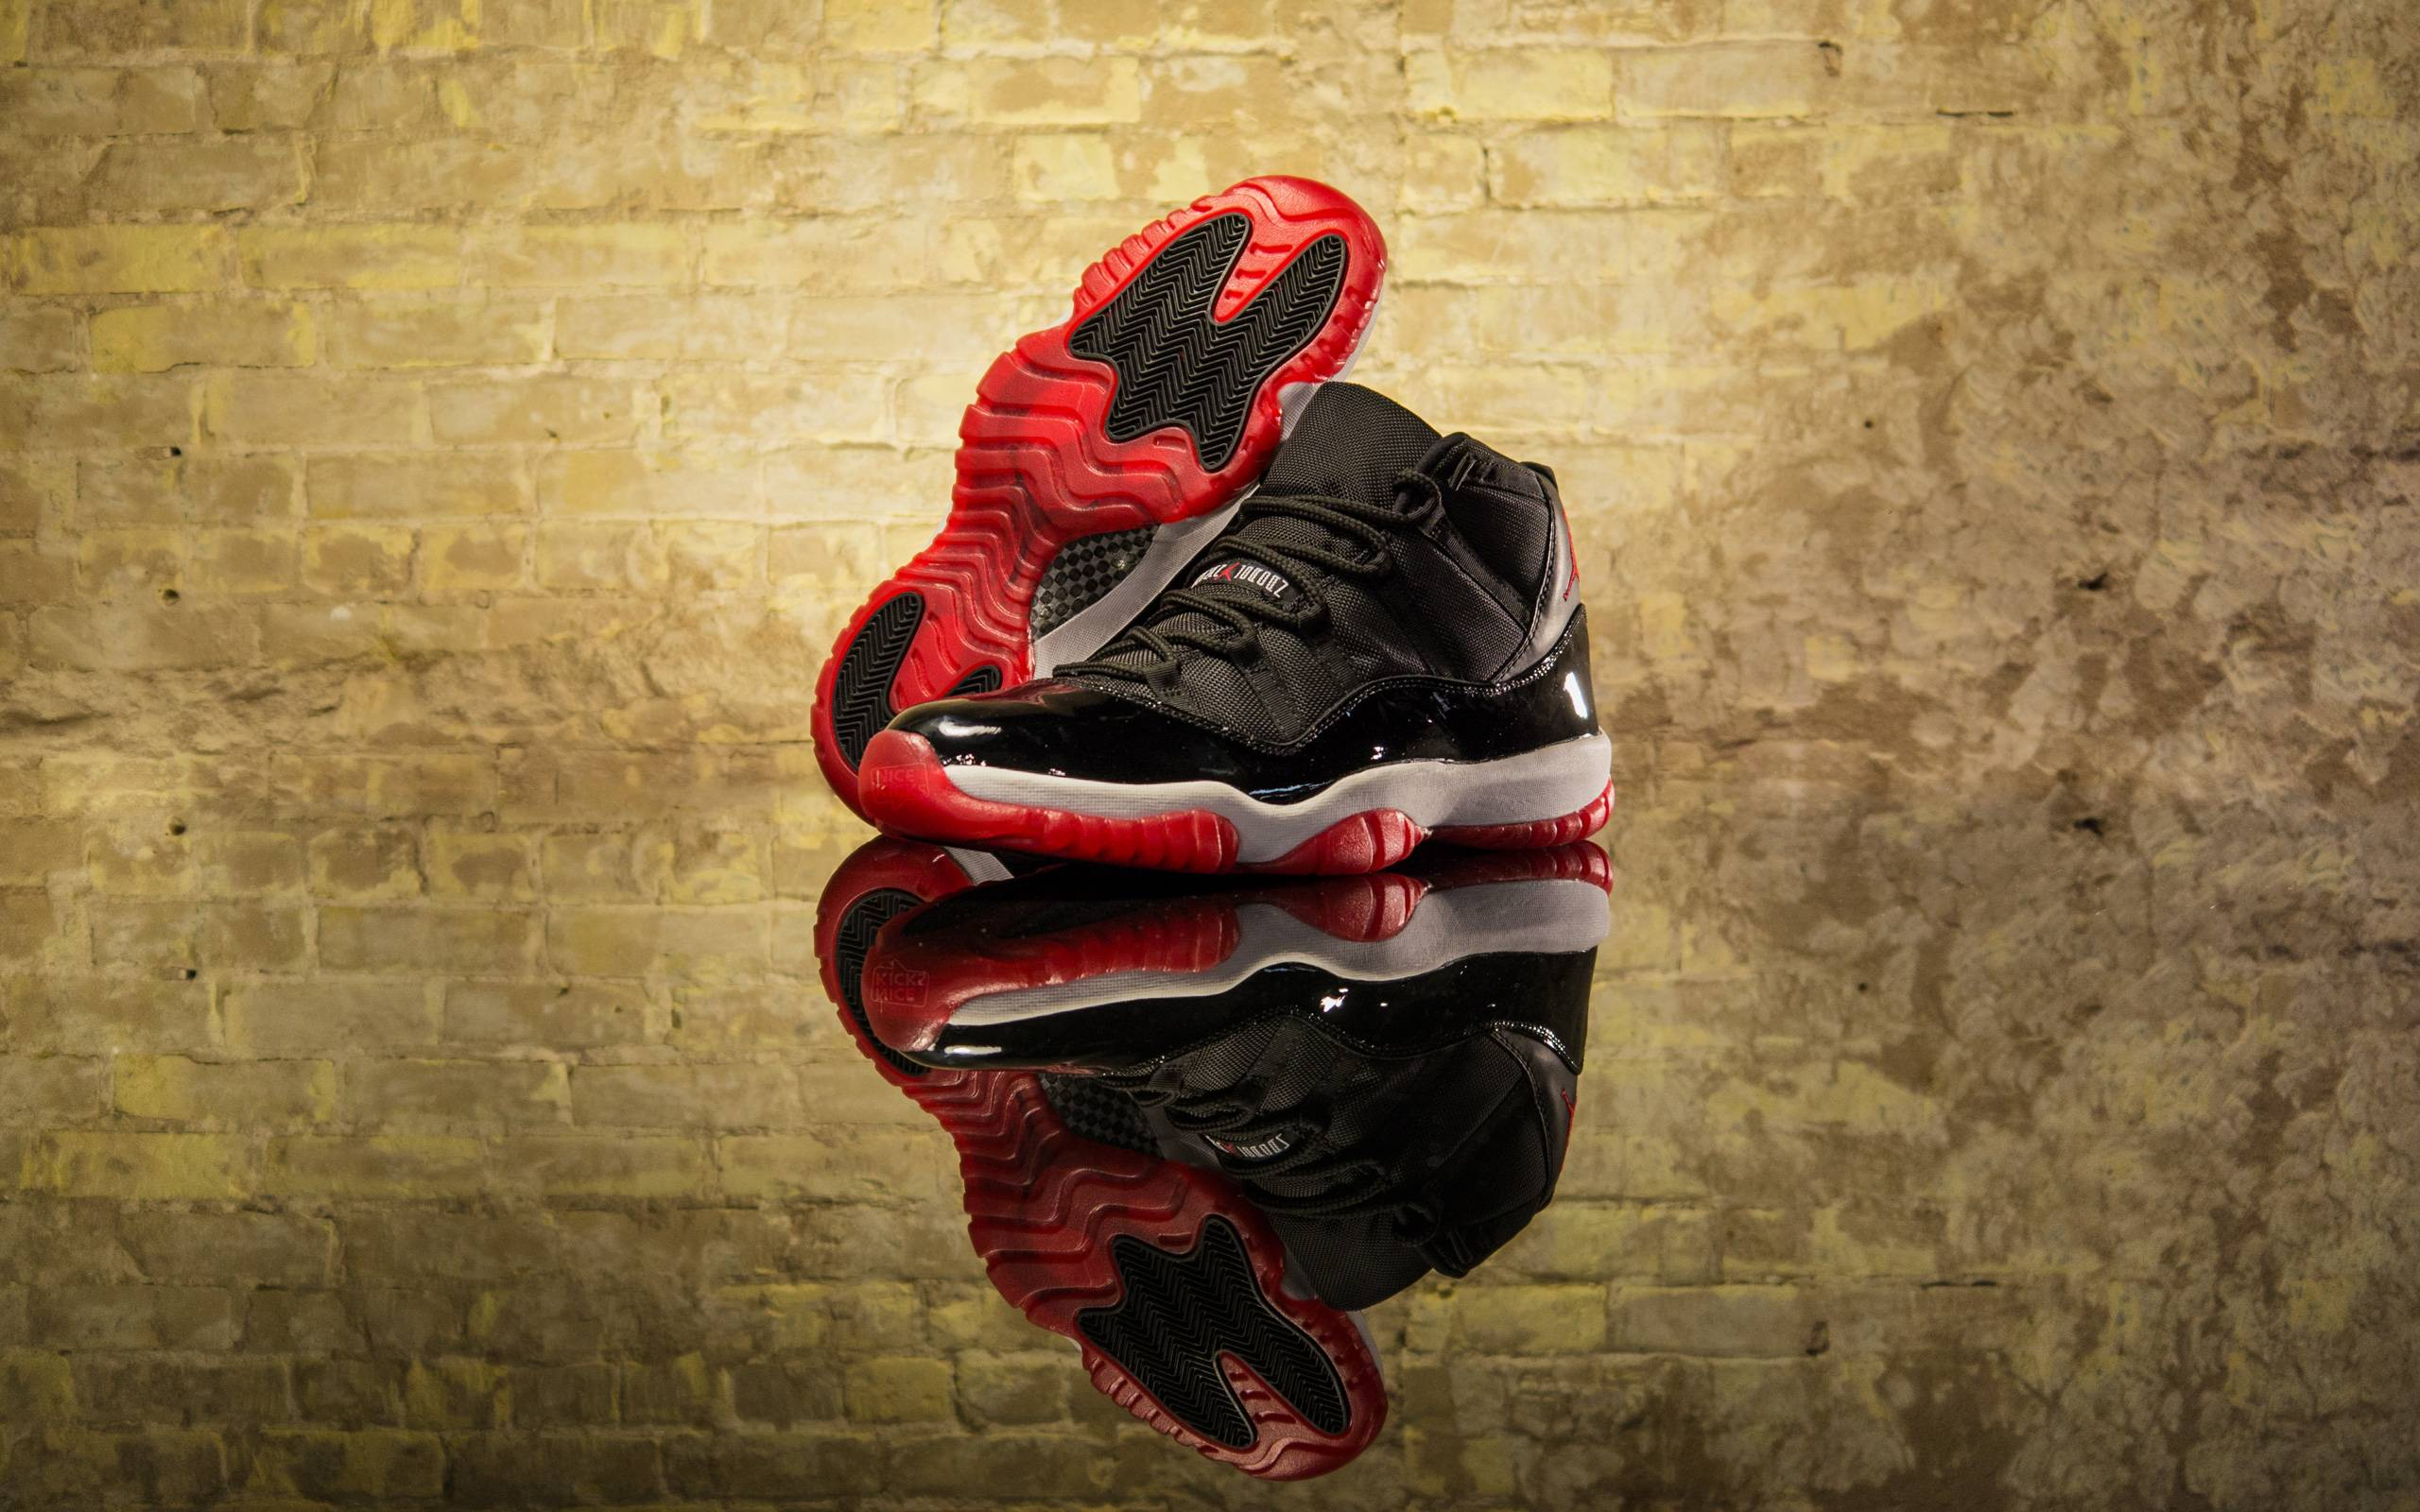 competitive price 7c129 3eb96 Weekly Wallpaper  2013 Year in Review - NiceKicks.